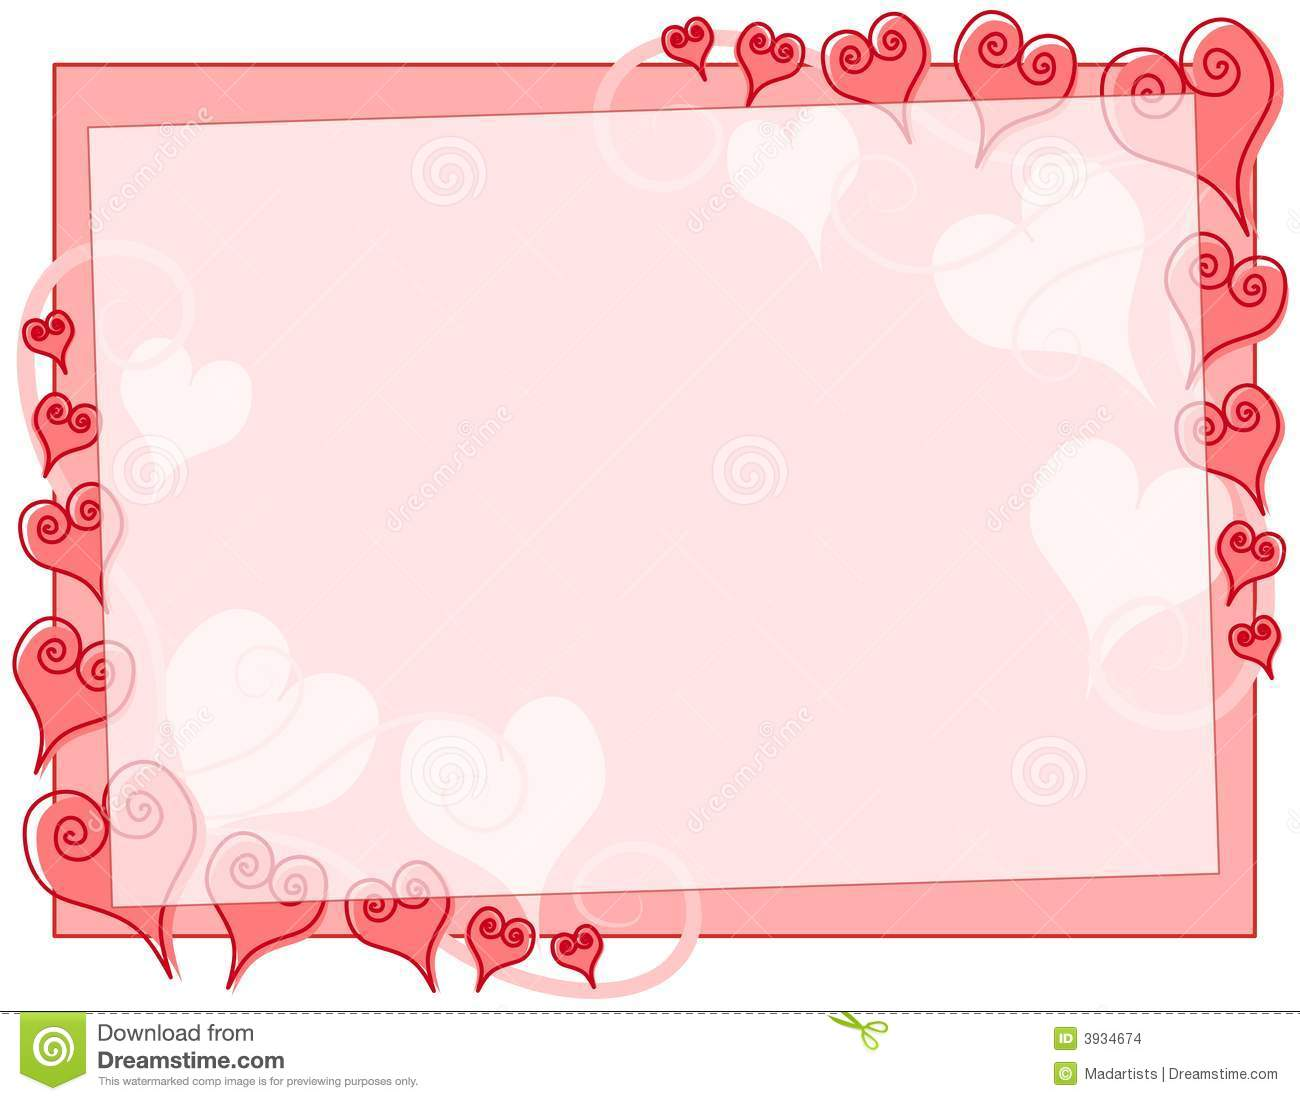 Abstract Valentine's Day Hearts Border Stock Images - Image: 3934674